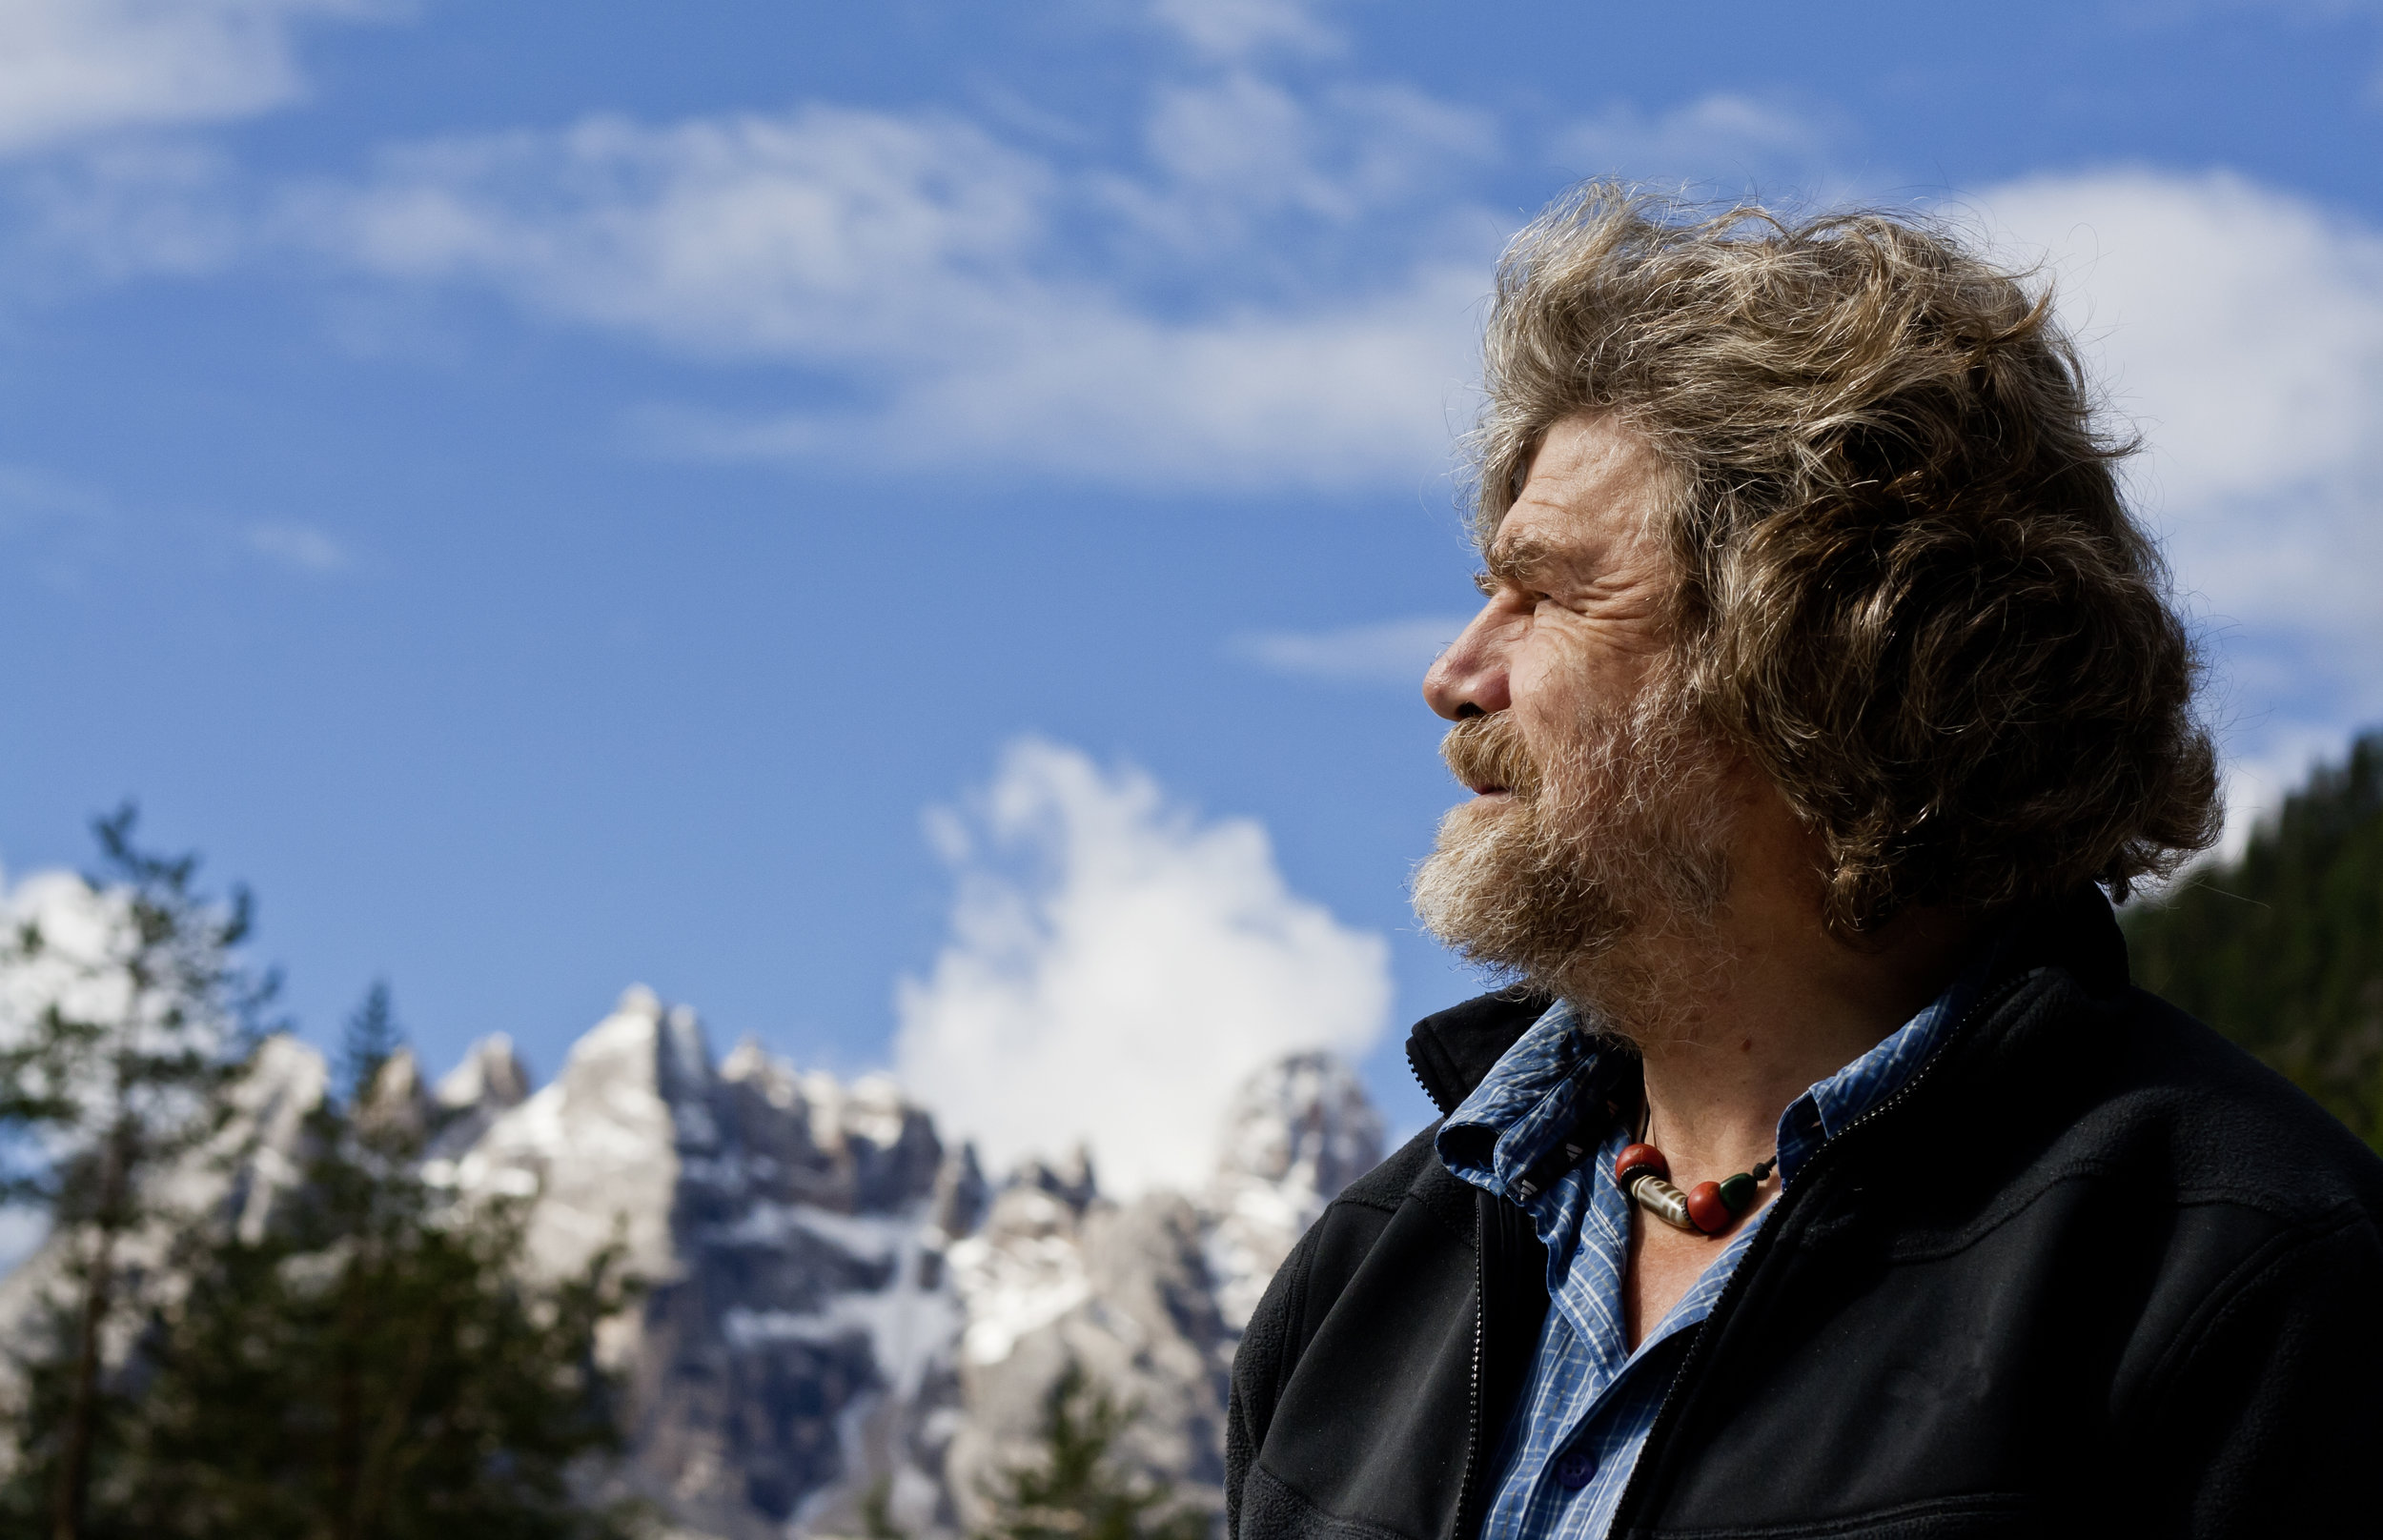 """""""The game climbers play is simple – we go freely to a place where you could die, to not die."""" Messner in the Dolomites.  Photo : Simon Ingram / Trail Magazine"""